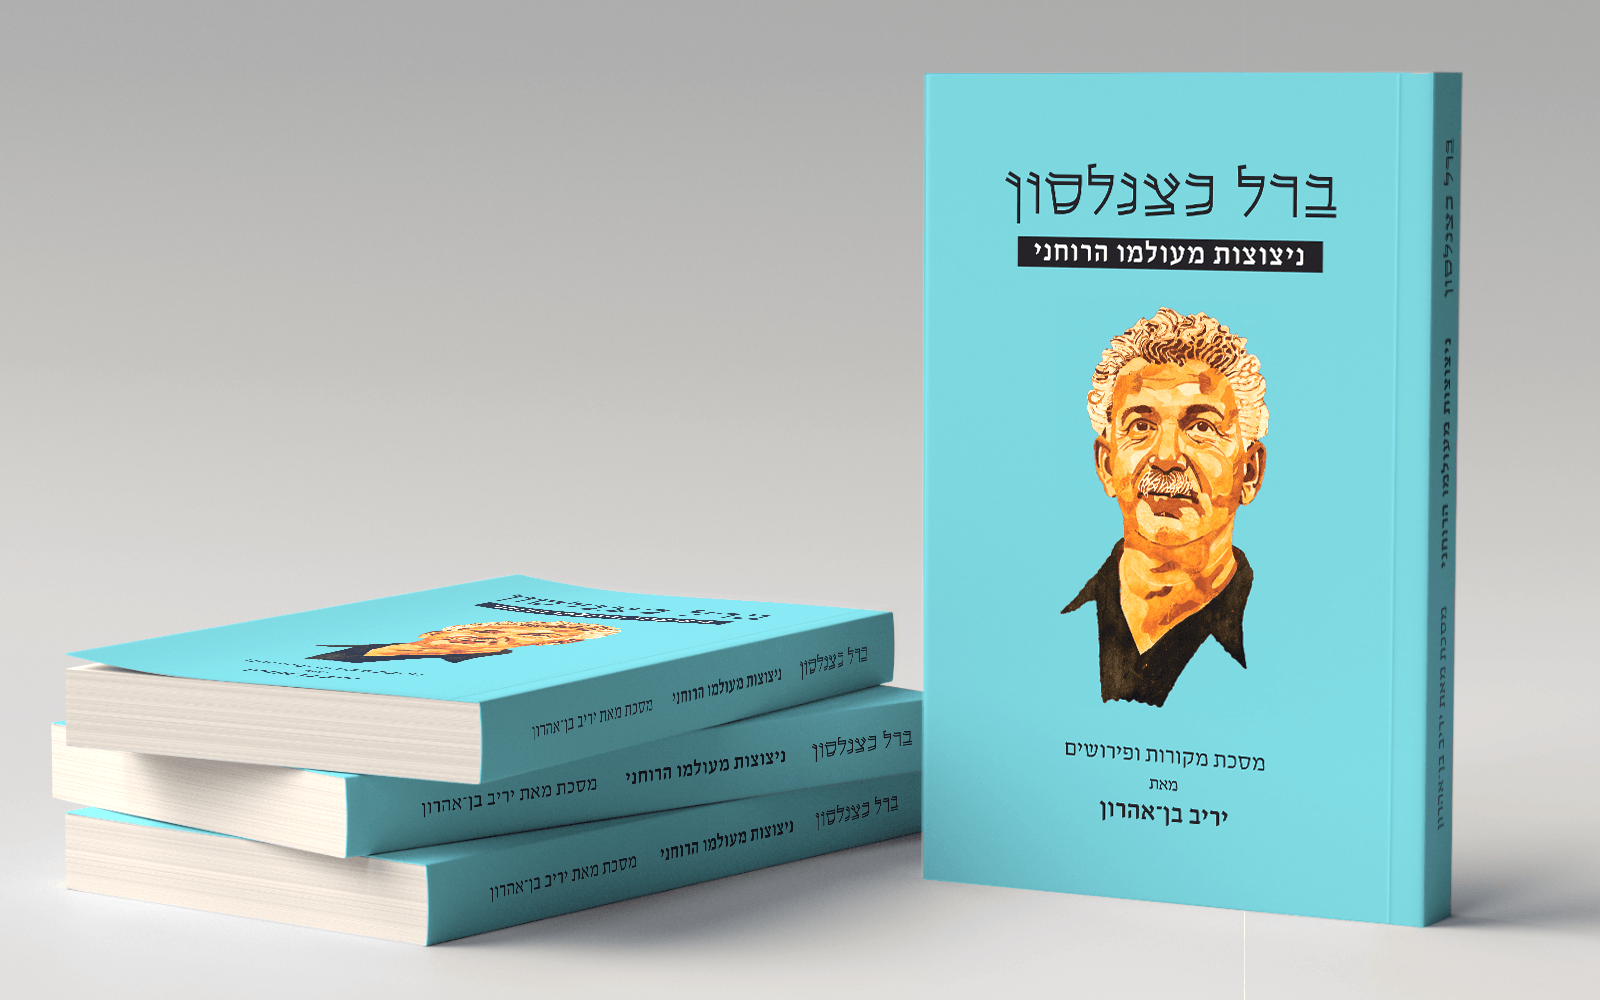 http://bigeyes.co.il/wp-content/uploads/2019/07/berl-cover-mockup.png